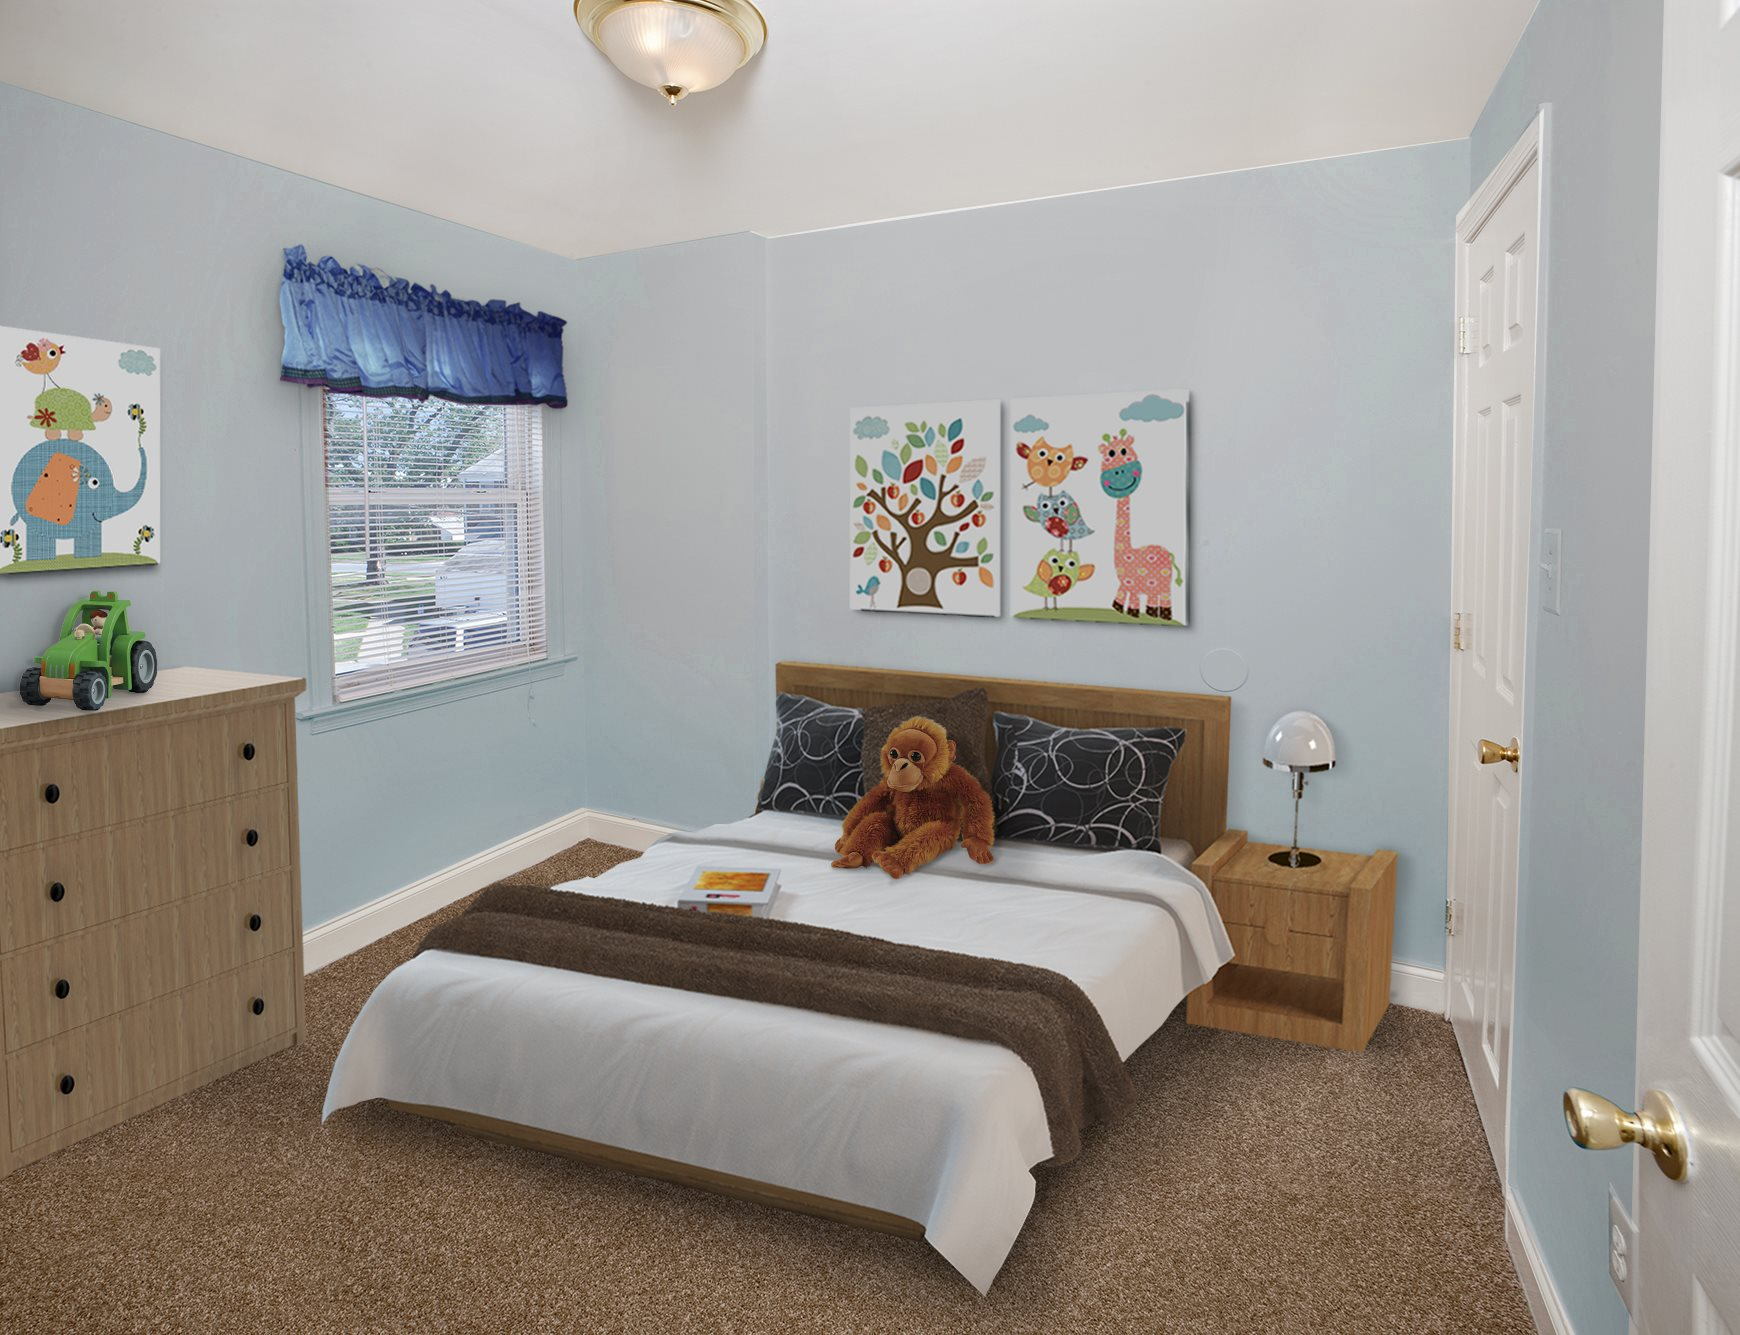 Modern Bedrooms at Day Village Townhomes, Dundalk, MD,21222